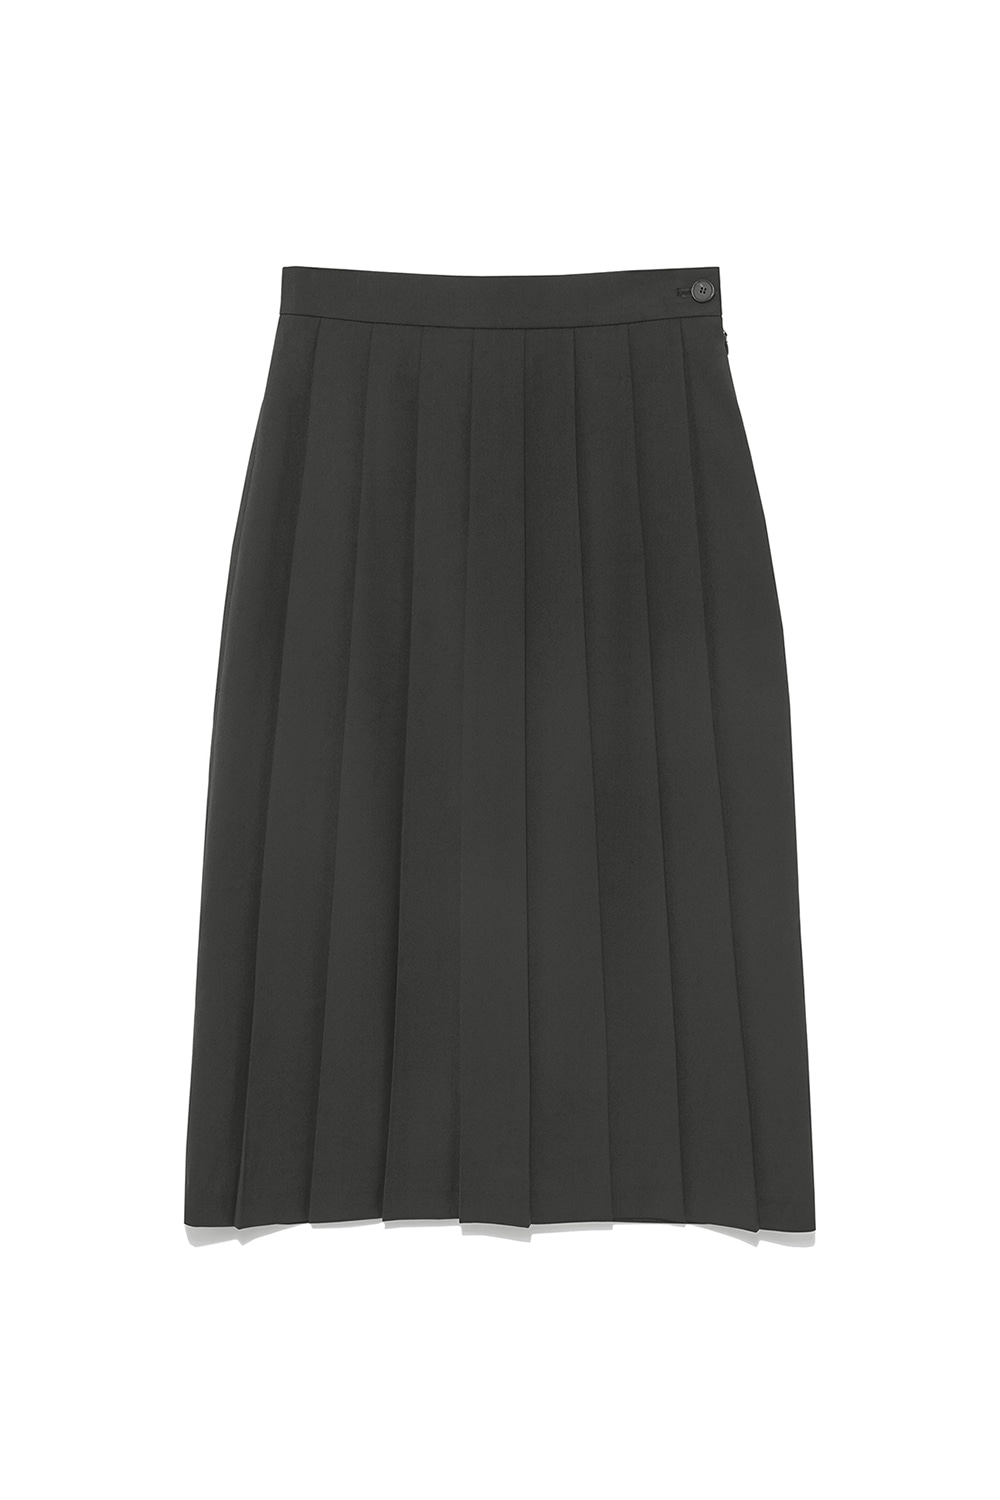 Unbalance Pleats Skirt Women [Grey]